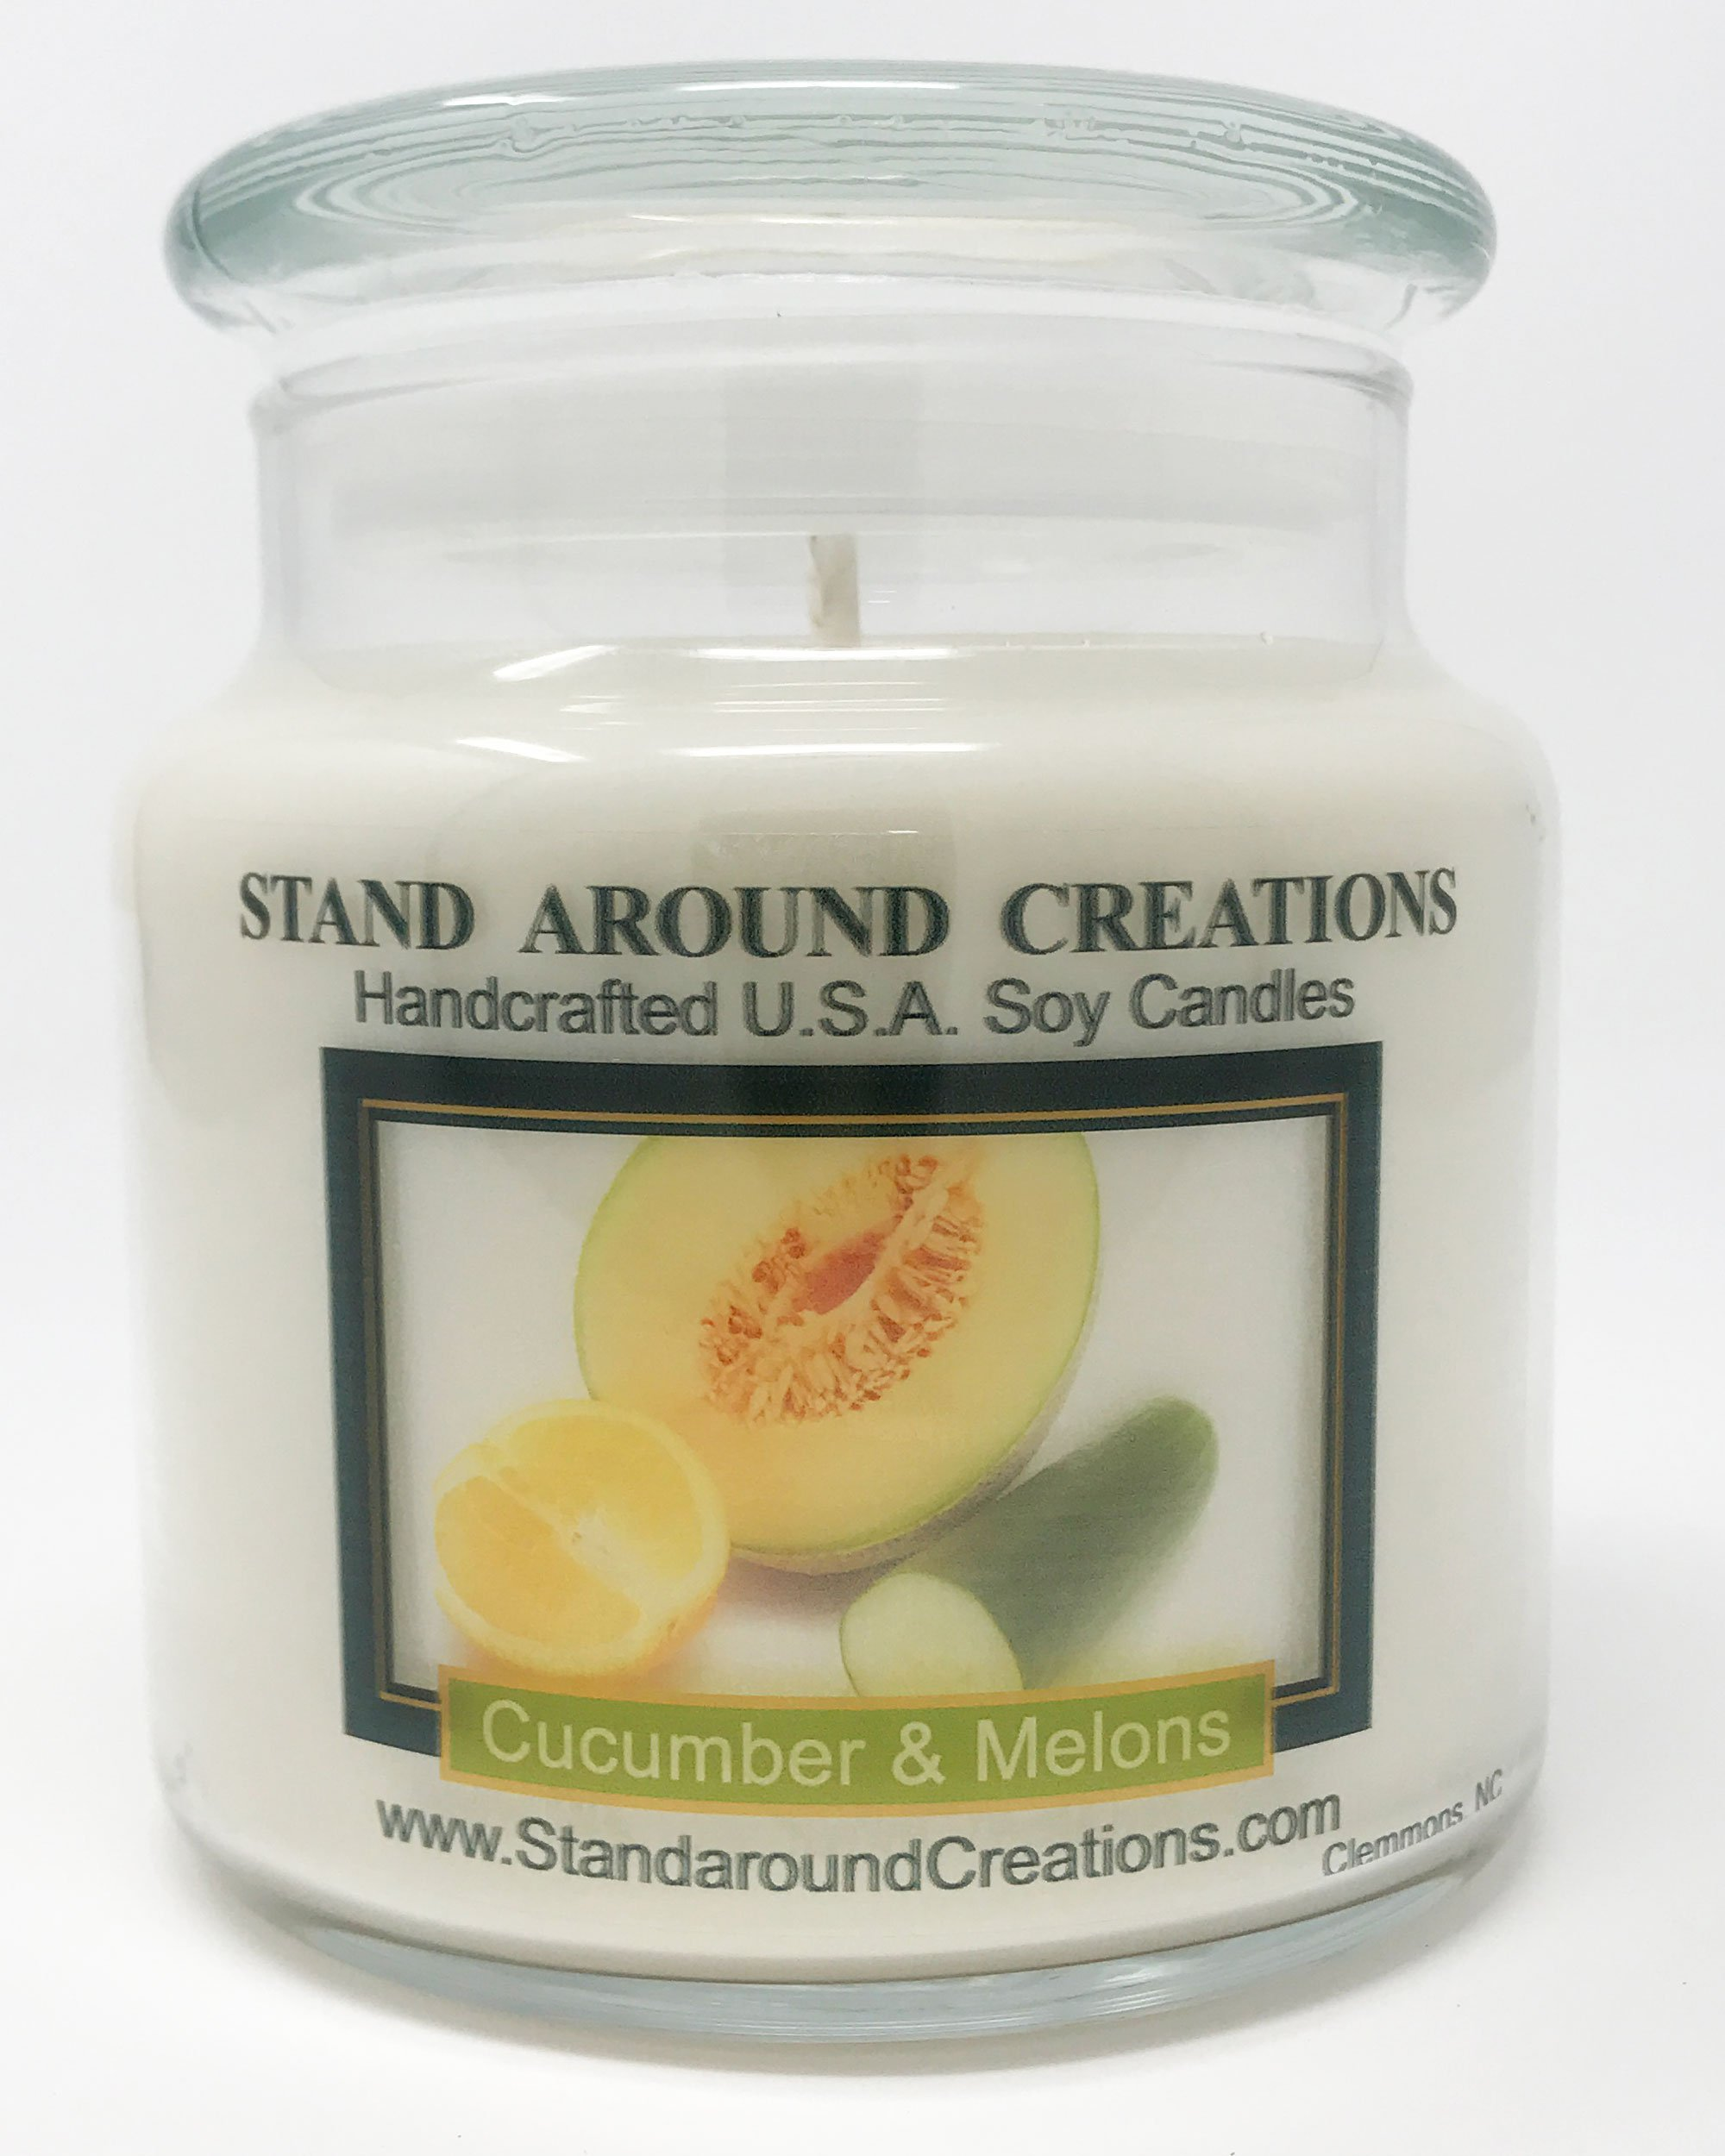 Premium 100% Soy Apothecary Candle - 16 oz. - Cucumber & Melons: A fruity honeydew melon w/green cucumber.